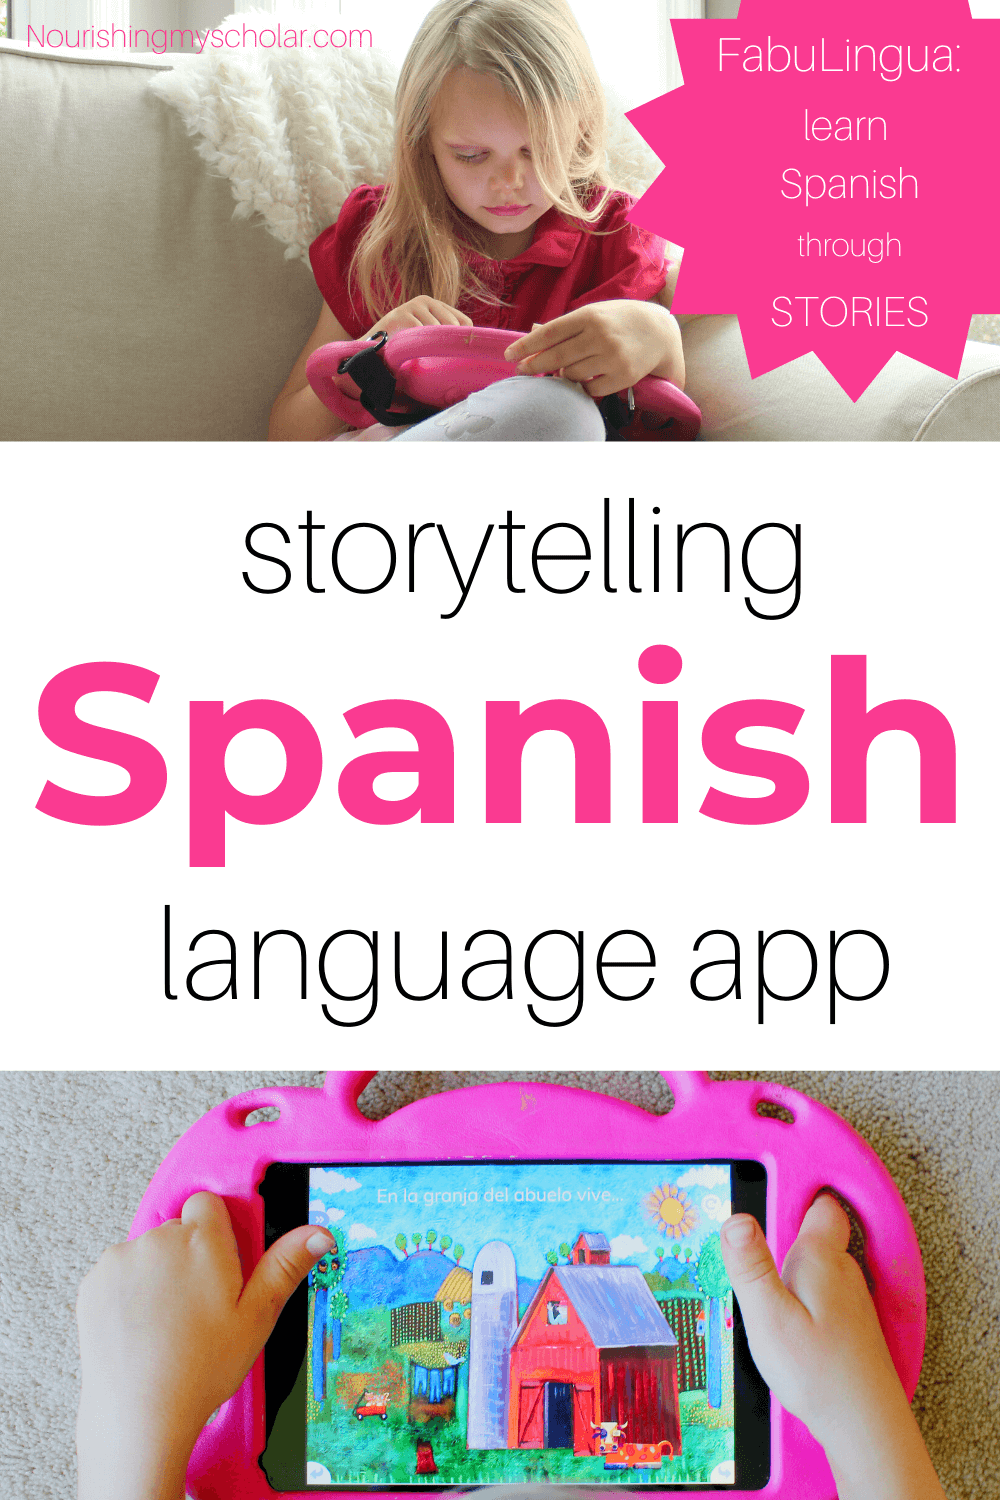 Storytelling Spanish Language App: FabuLingua - For parents wanting to raise bilingual children, here is an interactive Spanish language app that uses the power of storytelling to engage kiddos in a second language! #appsforkidseducational #appsforkids #Spanishforkids #FabuLingua #Spanish #Applearning #Appforkids #education #homeschool #Spanishlanguage